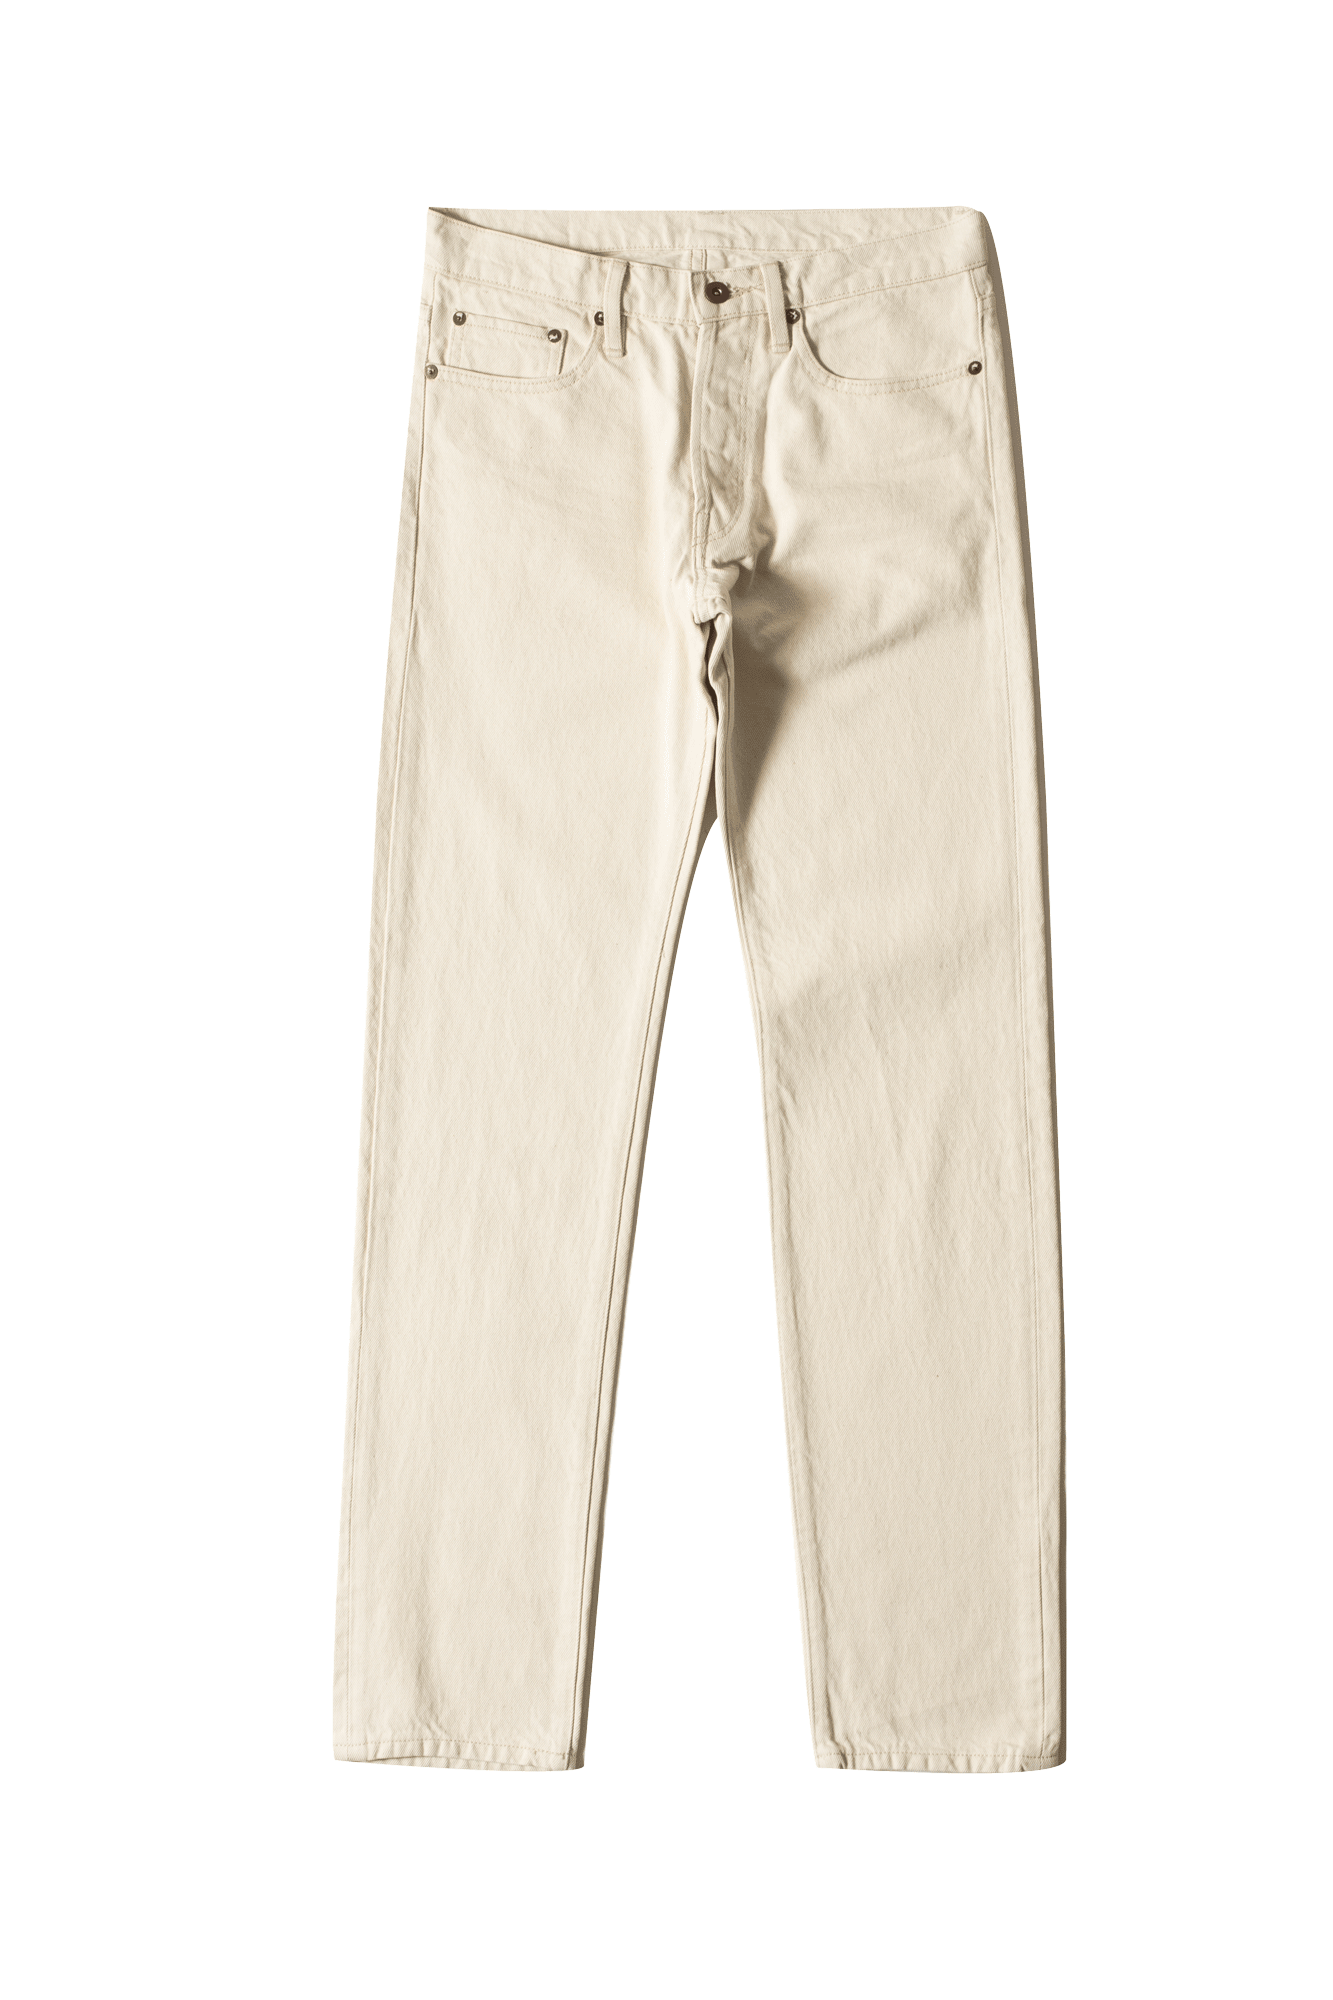 Nacional Trading Jeans Flag Denim Bianco NAT-17JN#000#WHITE#28 - One Block Down